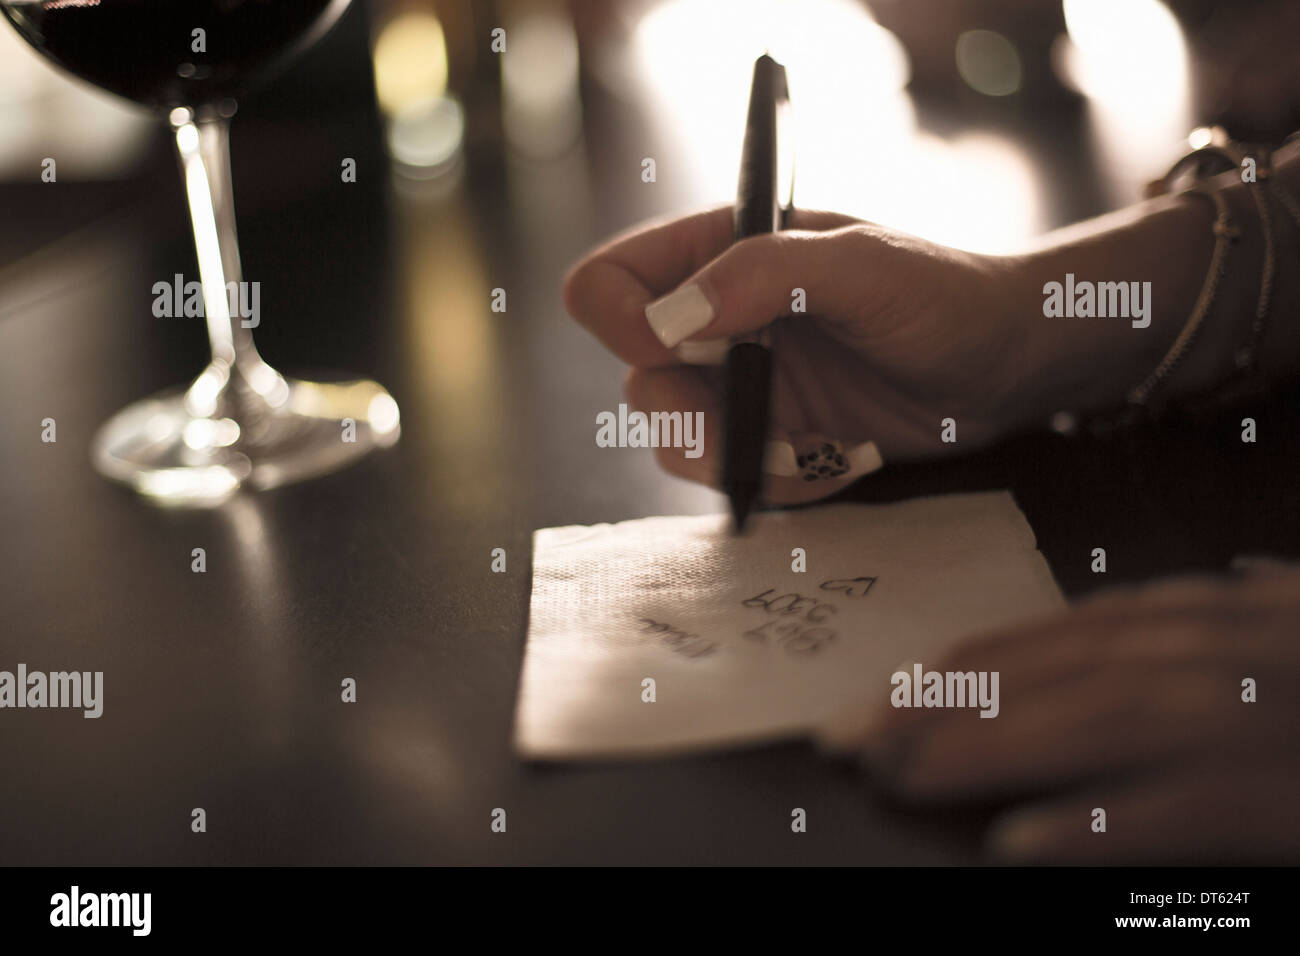 Close up of young woman writing her phone number on a napkin in bar - Stock Image